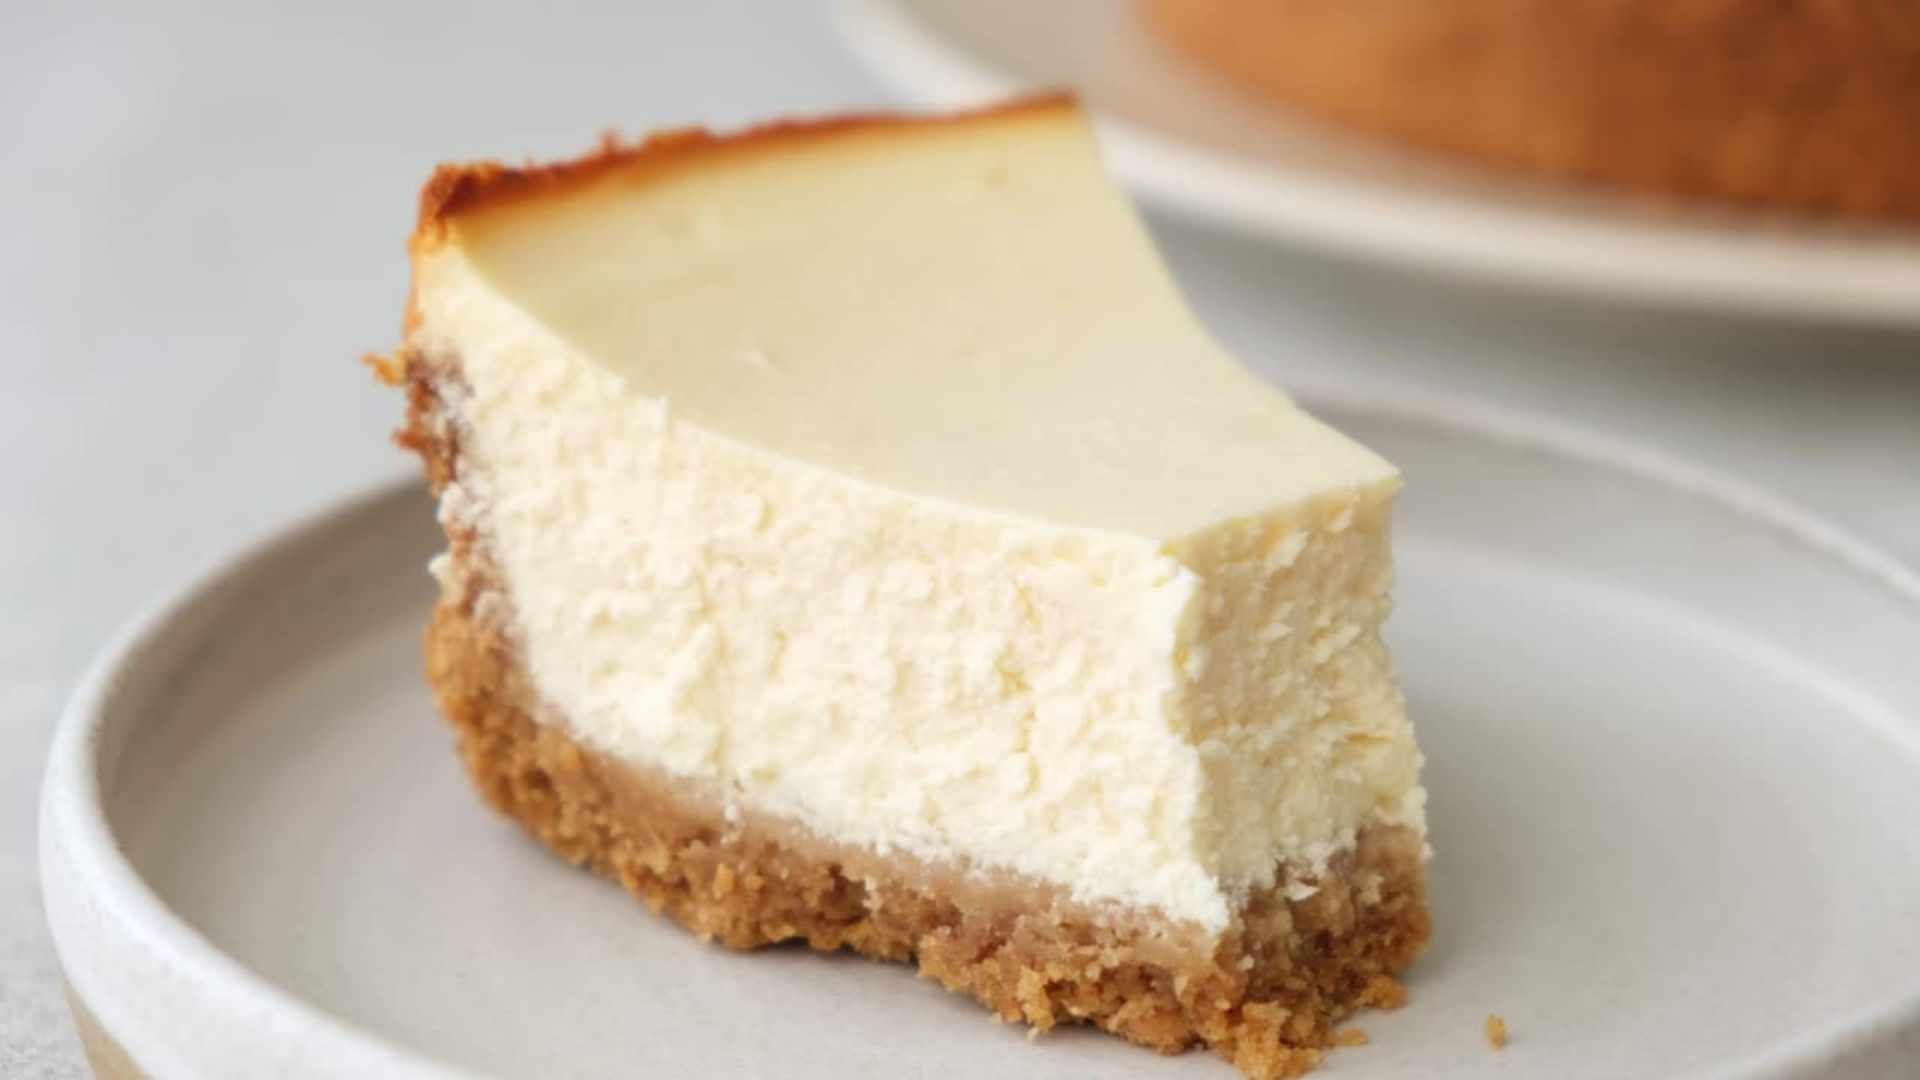 keto-instant-pot-cheesecake-low-carb-recipe